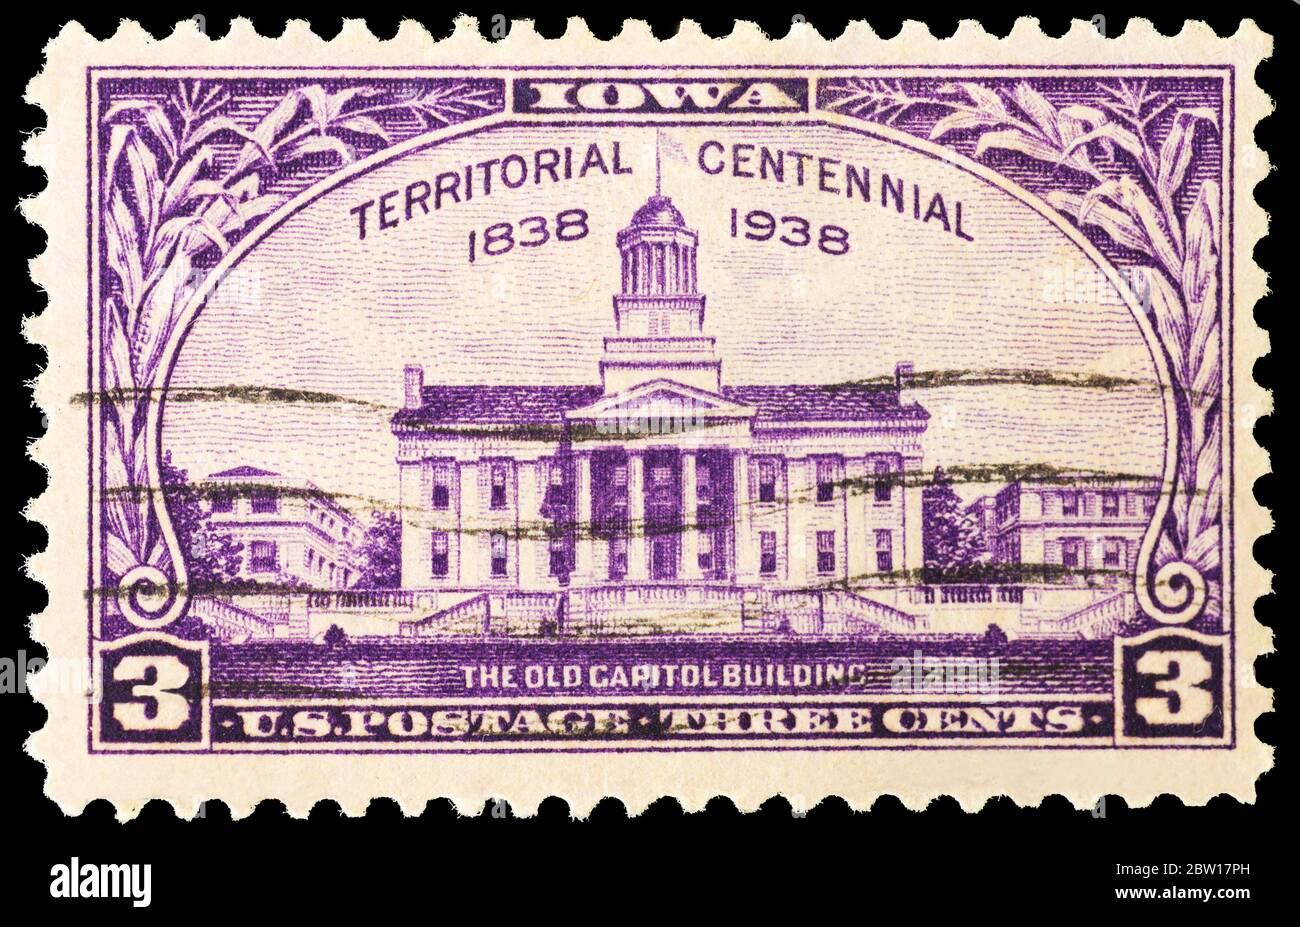 A 1938 US Postage Stamp commemorating Iowa Territory Centennial. The image shows the Old Capitol Building. Stock Photo